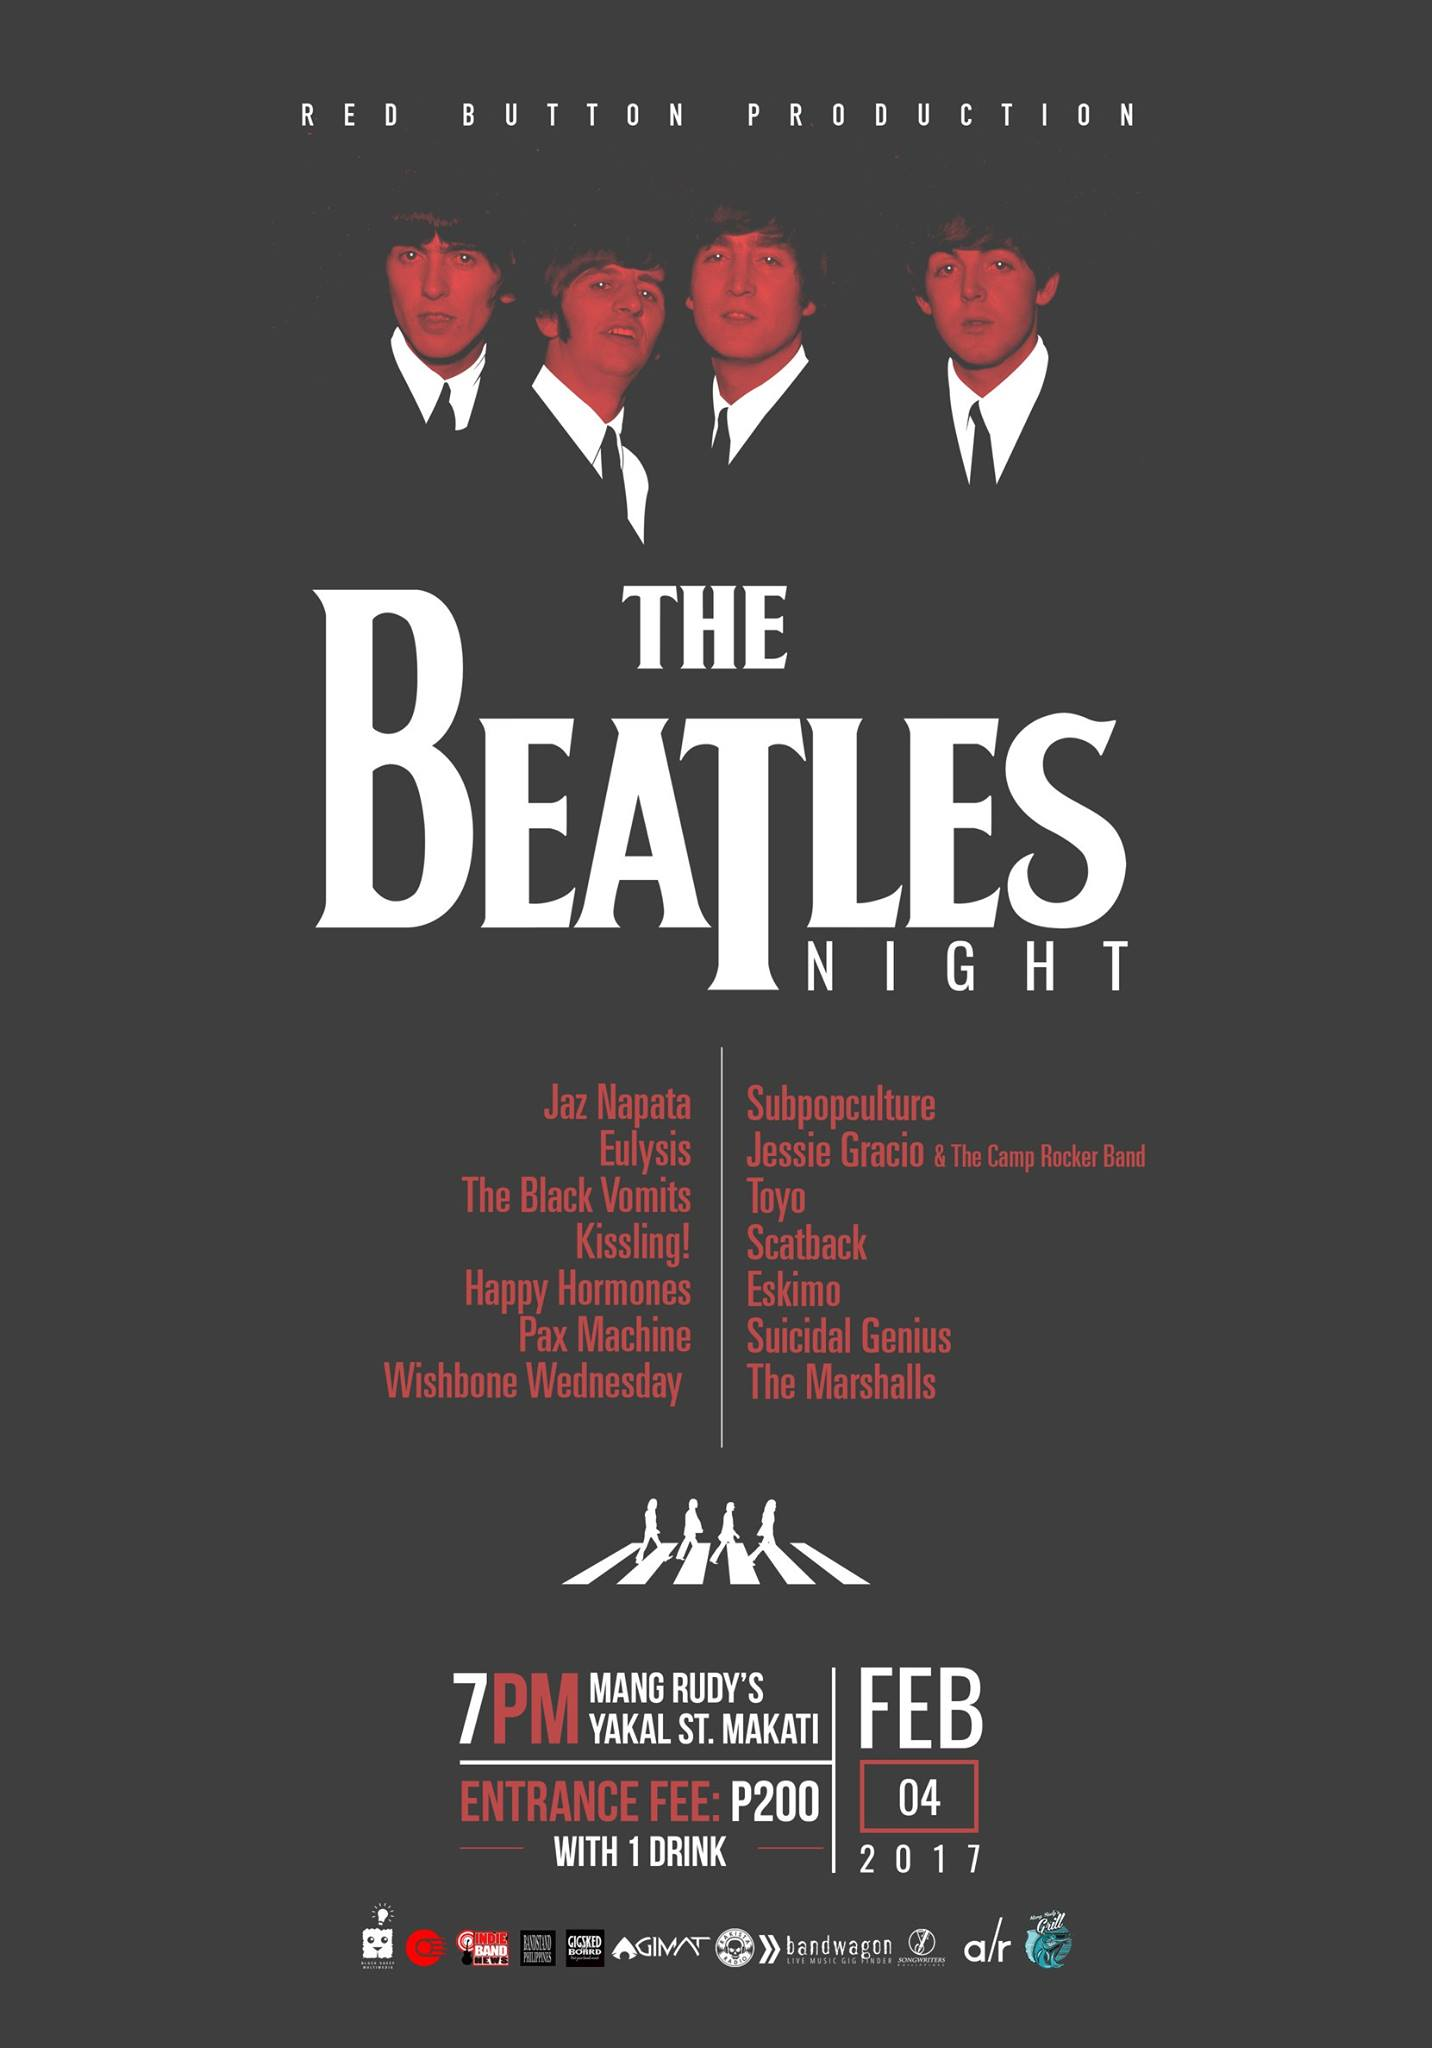 "Re Button Event #182: Beatles Night clock Saturday, February 4 at 7 PM - 2 AM Feb 4 at 7 PM to Feb 5 at 2 AM pin Show Map Mang Rudy's Tuna Grill And Papaitan 148 A Yakal Street San Antonio Village, 1230 Makati, Philippines Red Button Production Like This Page · January 25 · Red Button Production present ""BEATLES NIGHT"" Red Button Event #182 February 4, Saturday 